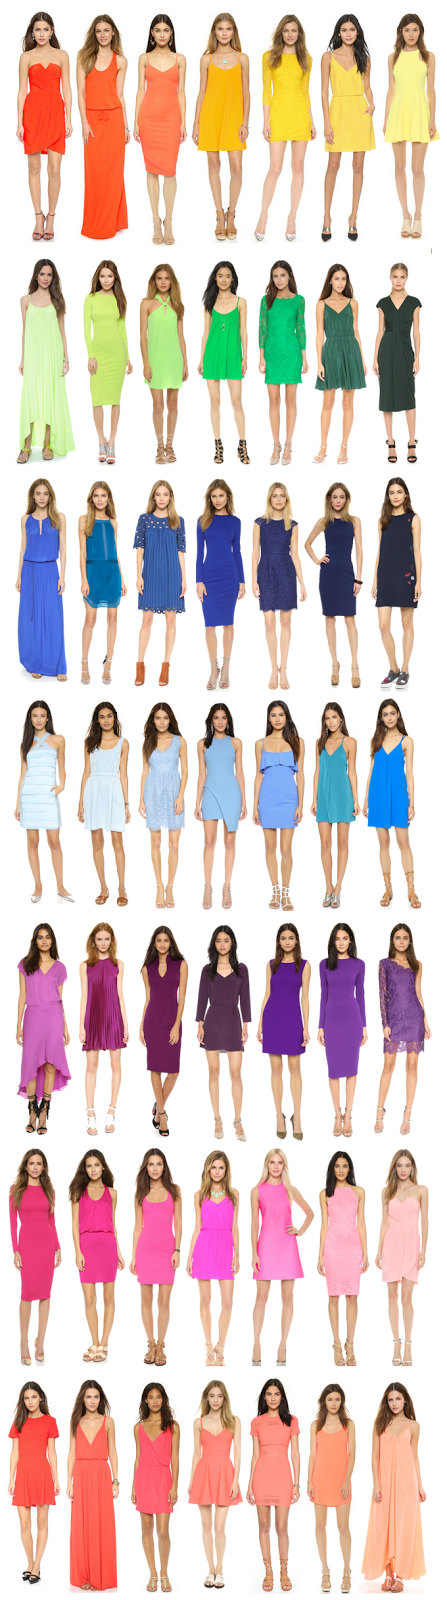 rainbow dresses-  want one of each!